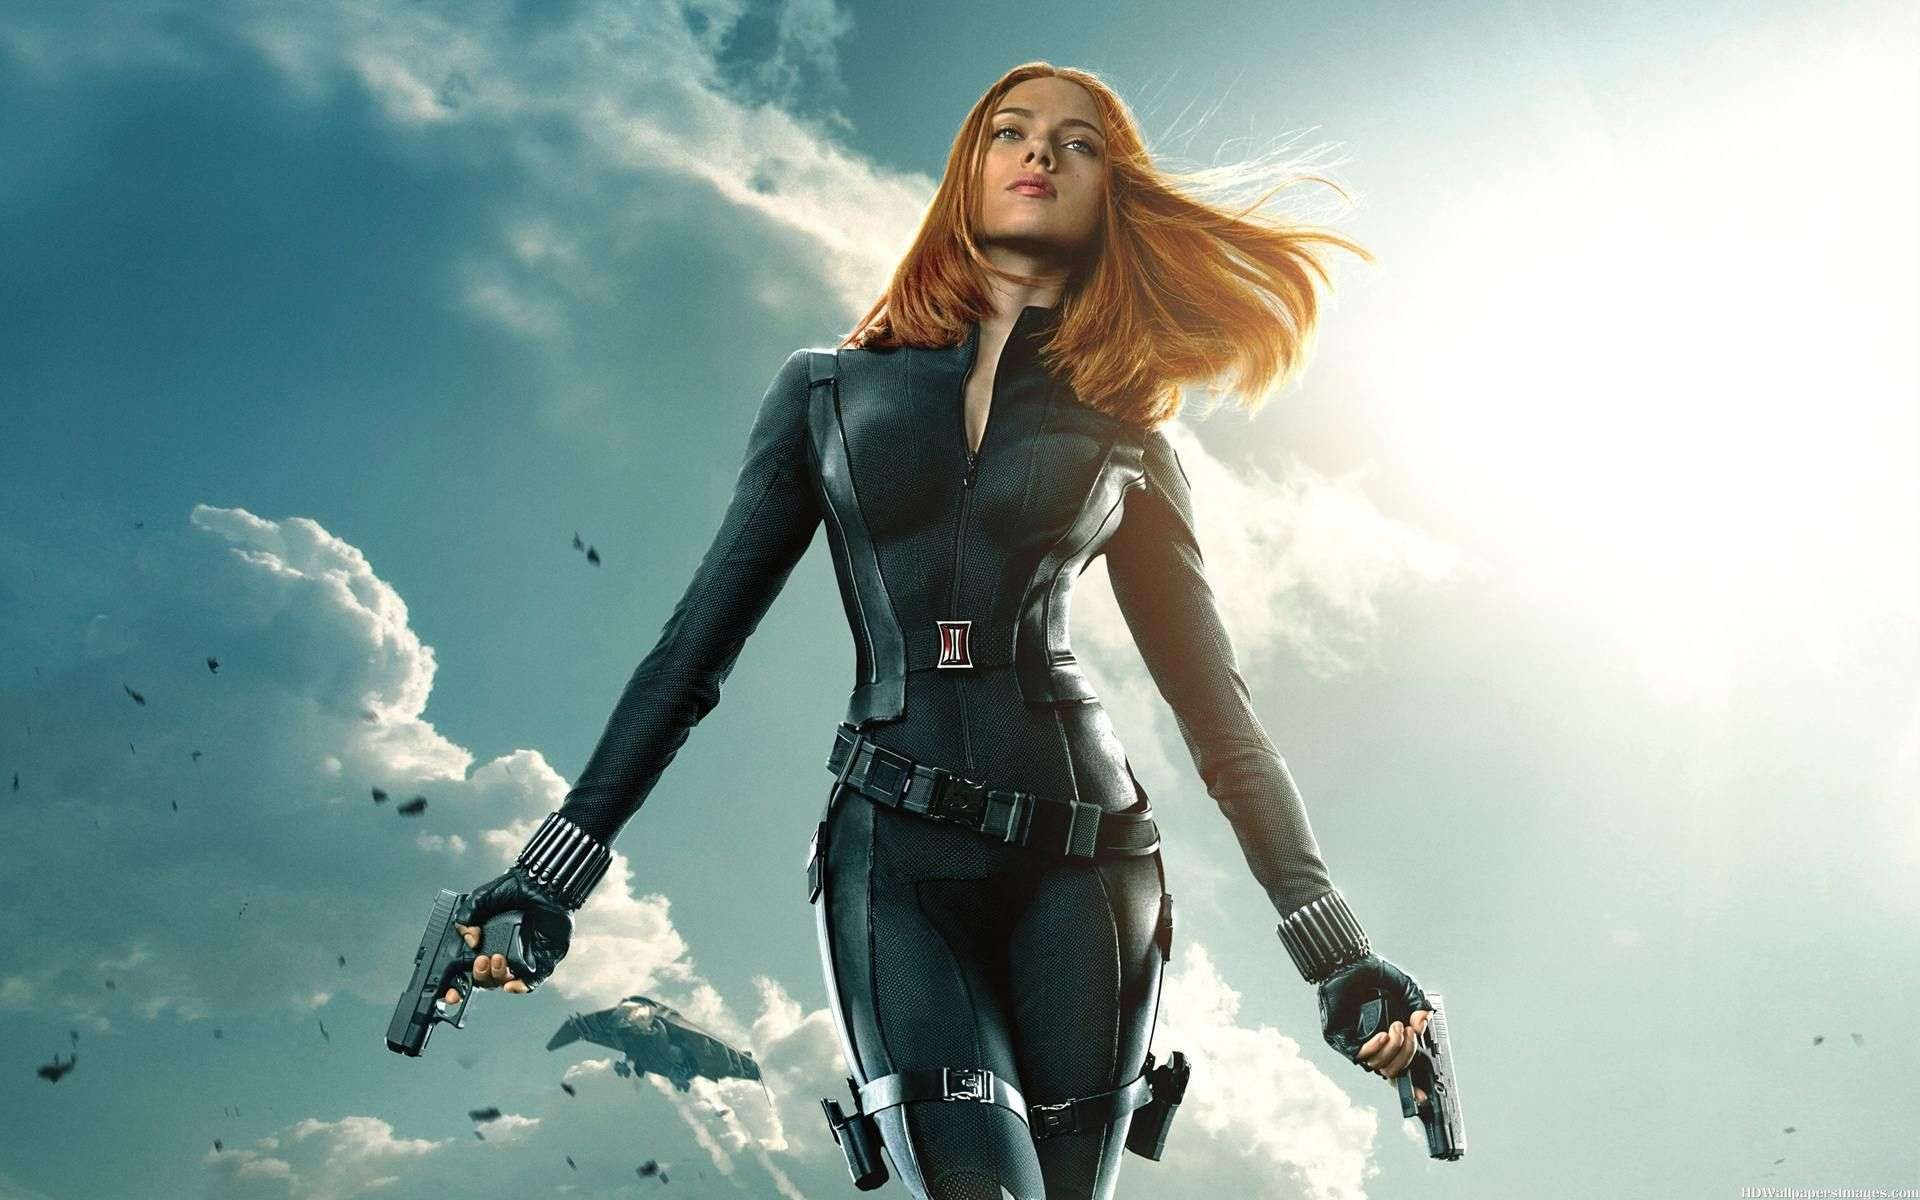 Scarlett-Johansson-In-Captain-America-The-Winter-Soldier-Images-Download